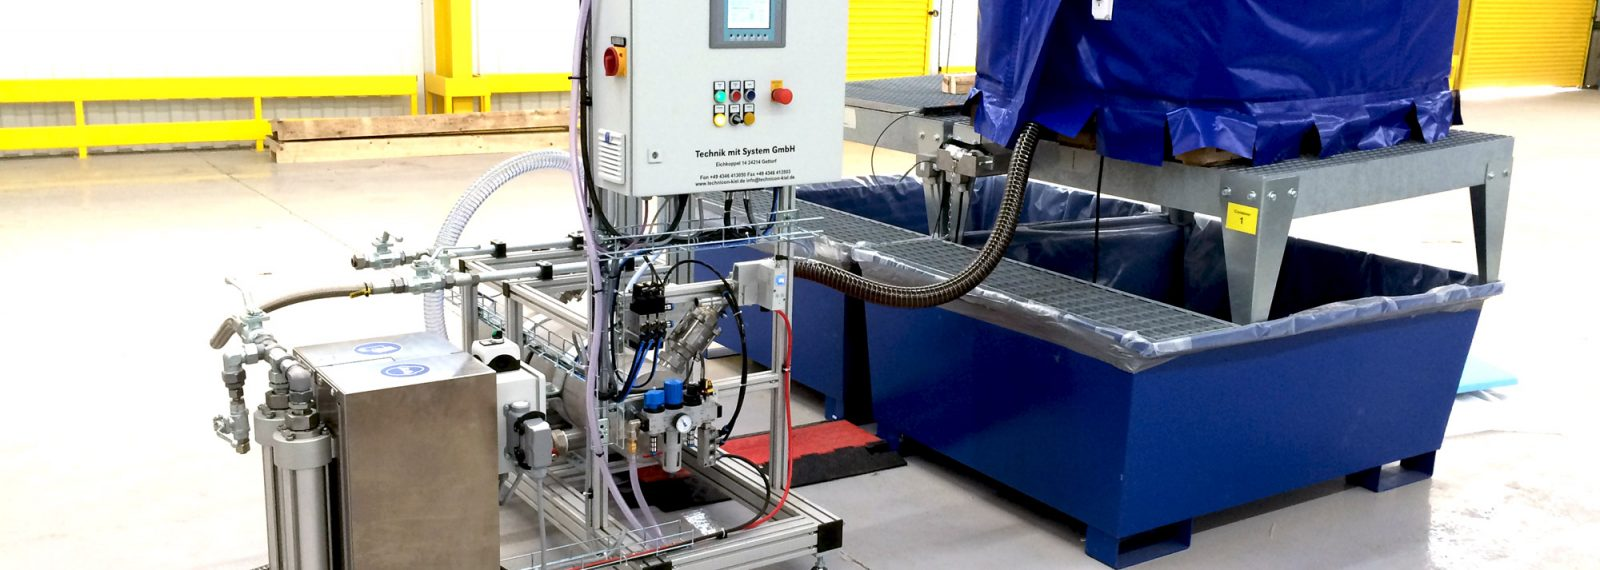 adhesive application IBC container and pump system